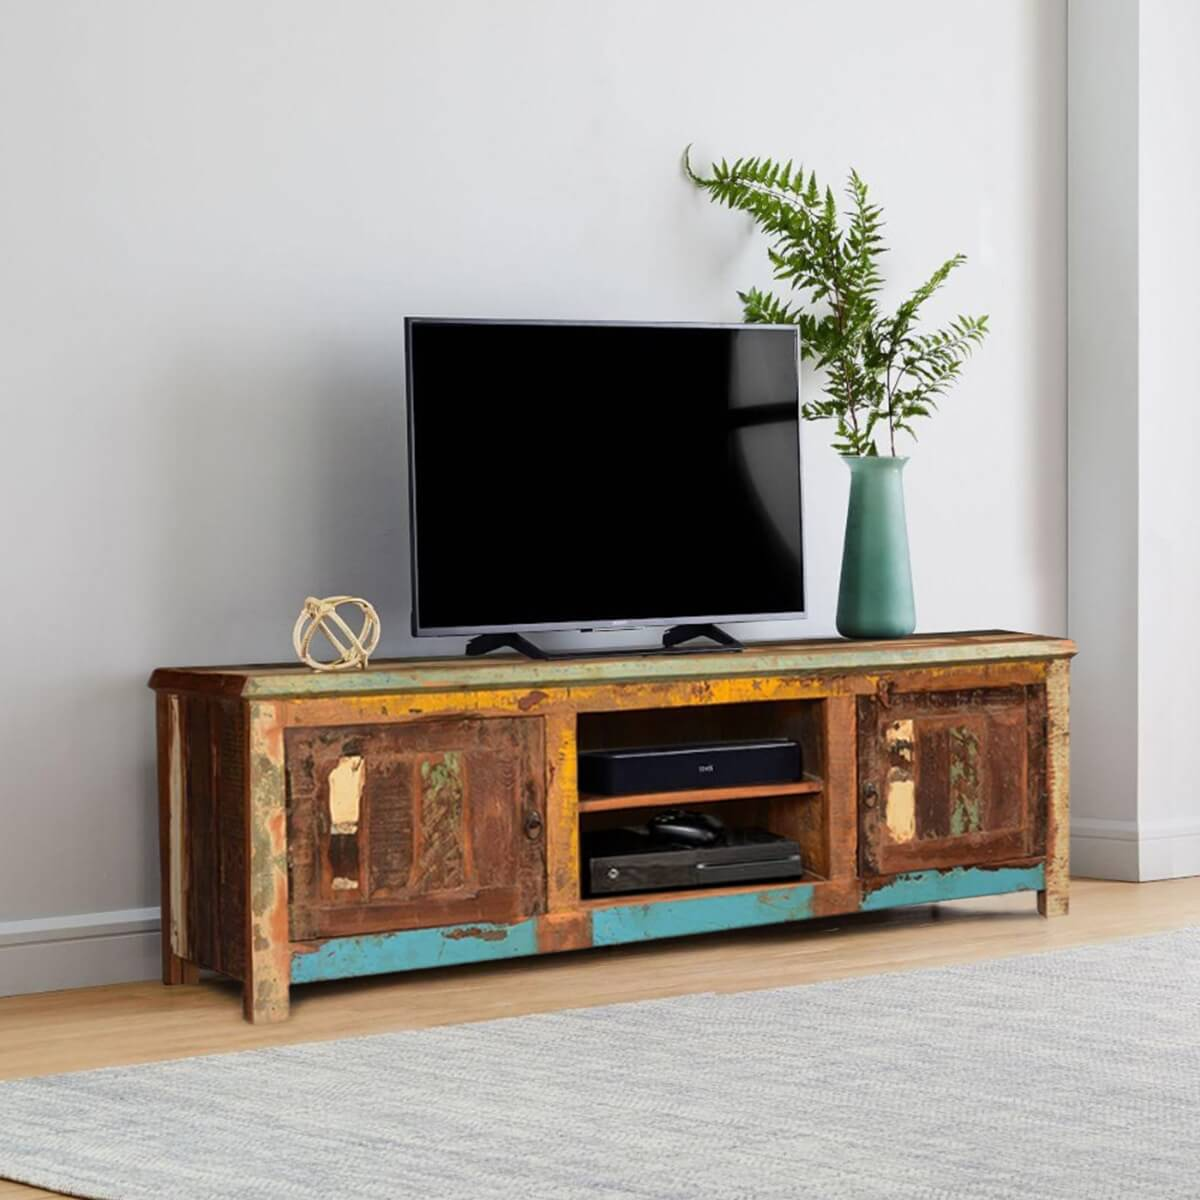 Bienville retro style reclaimed wood media tv stand 2 door for Barnwood media cabinet